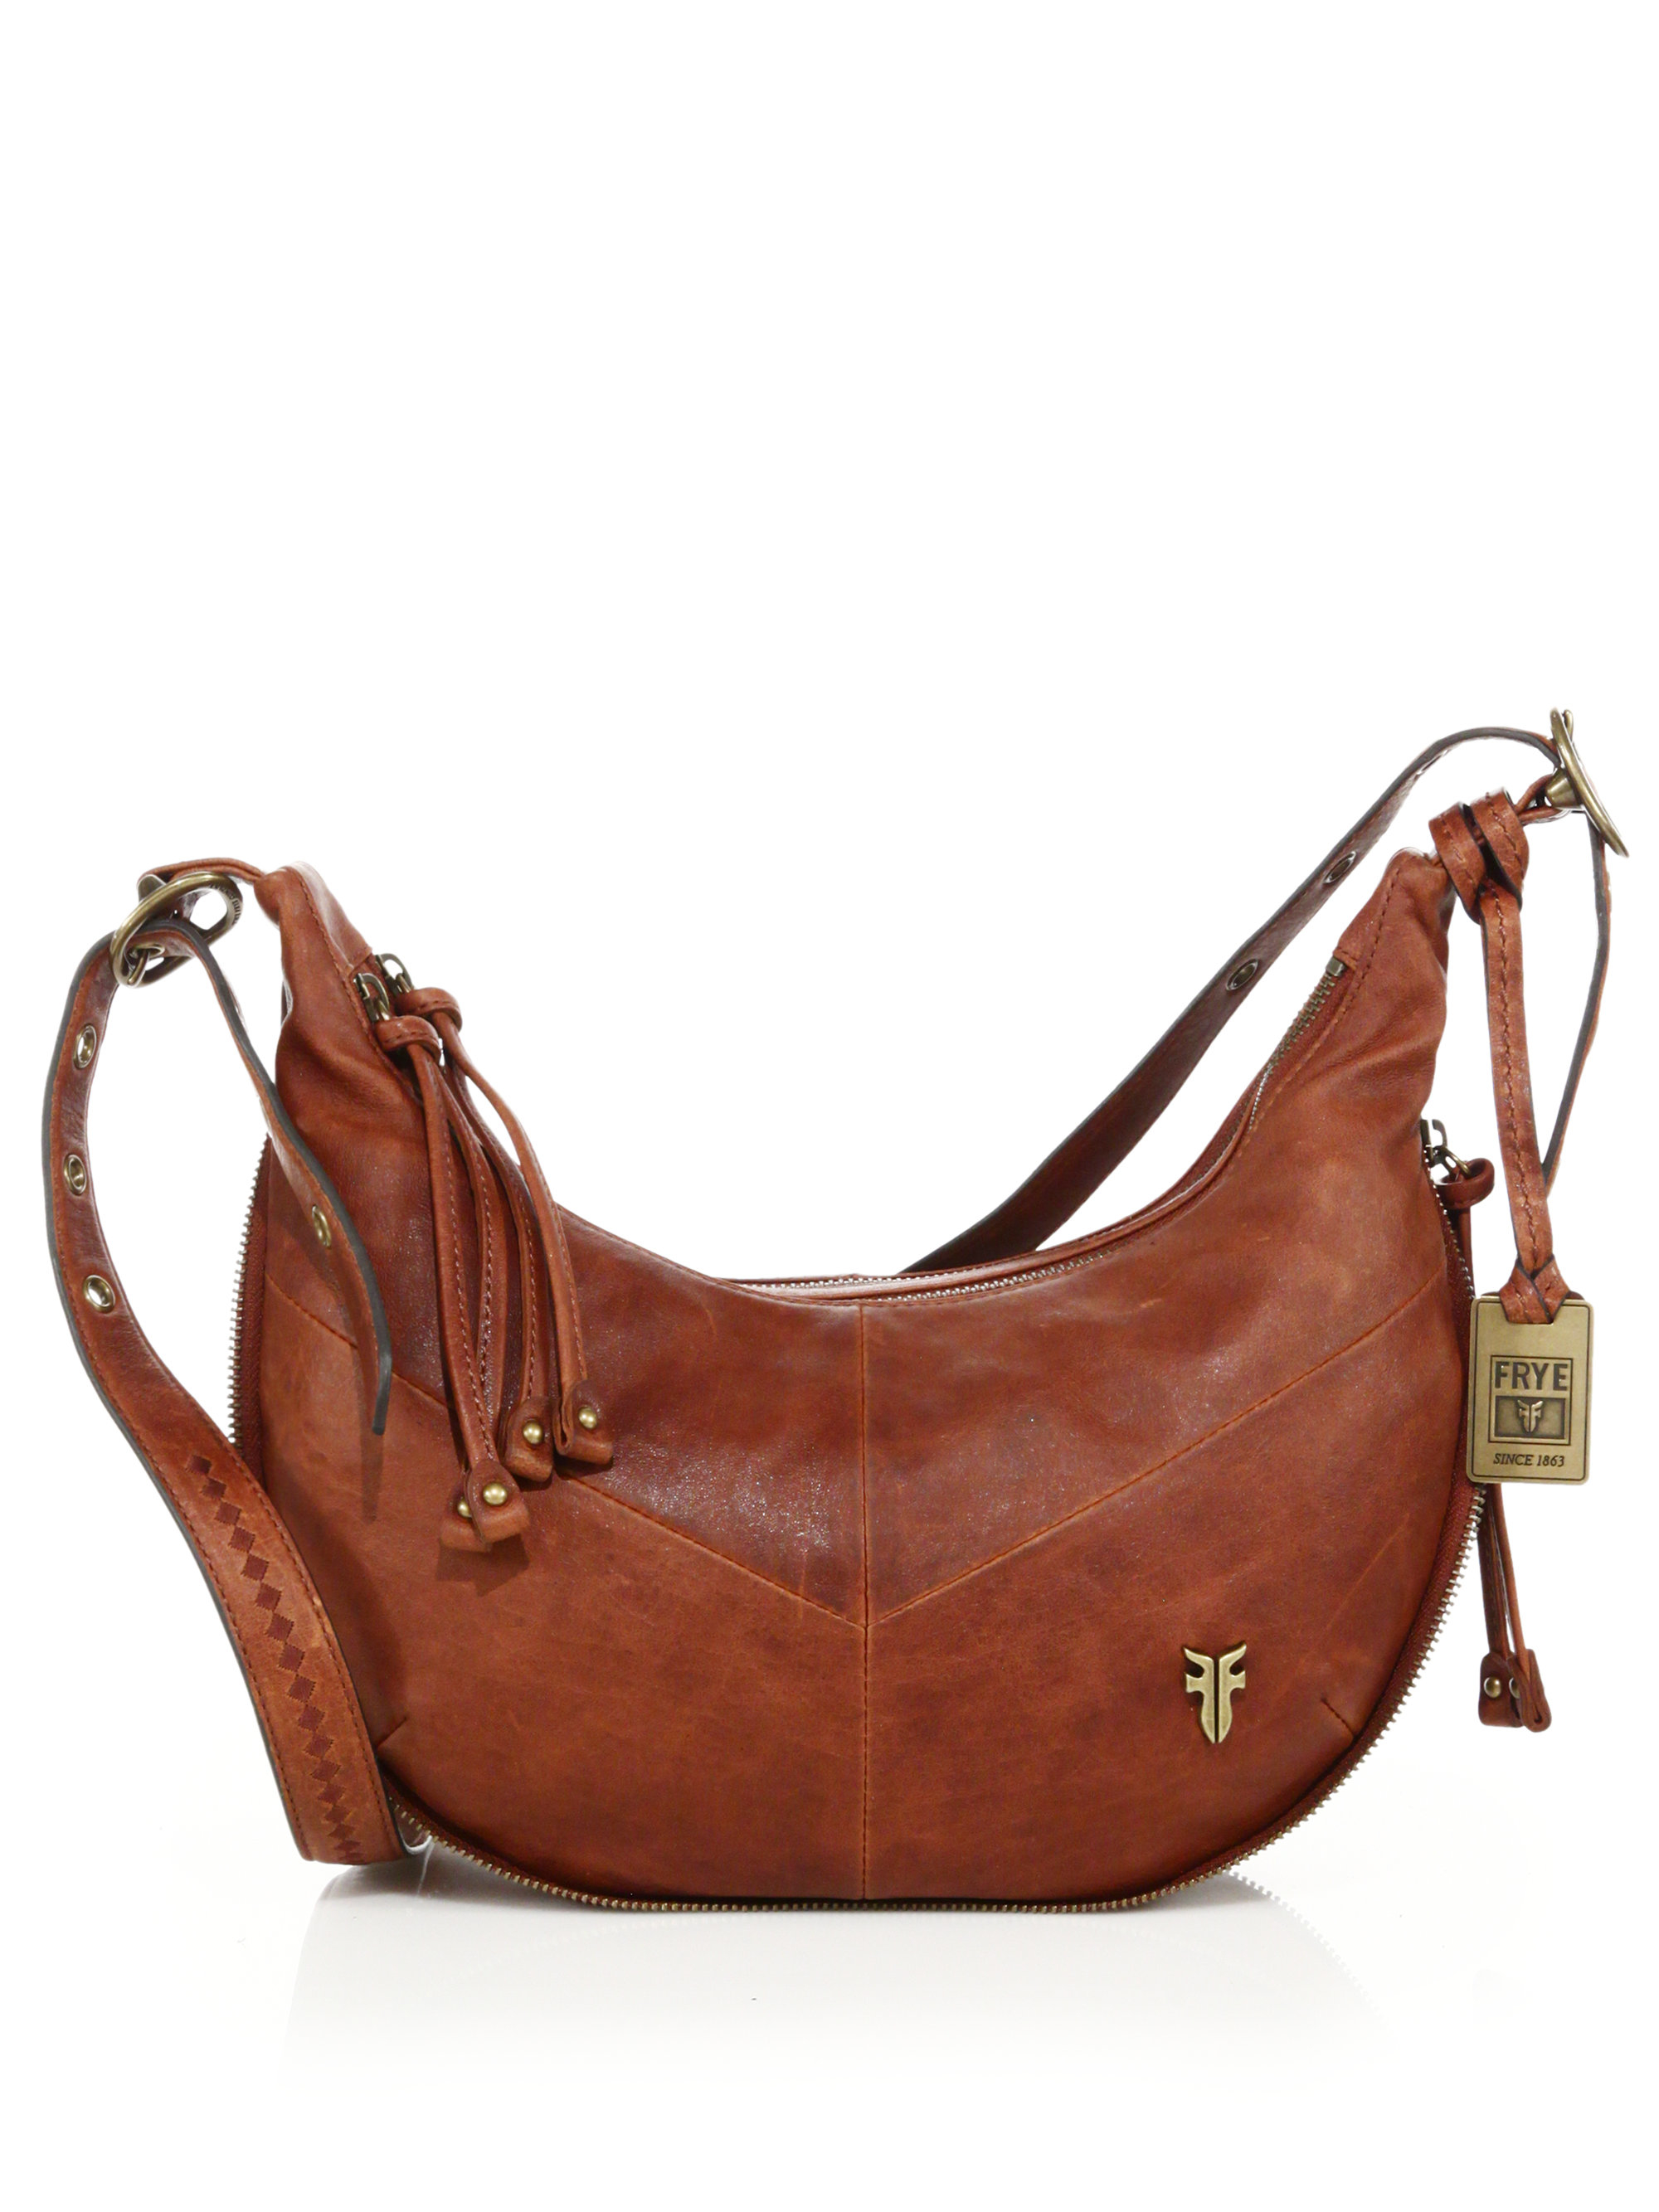 deb6302758834b Frye Belle Bohemian Leather Crossbody Bag in Brown - Lyst